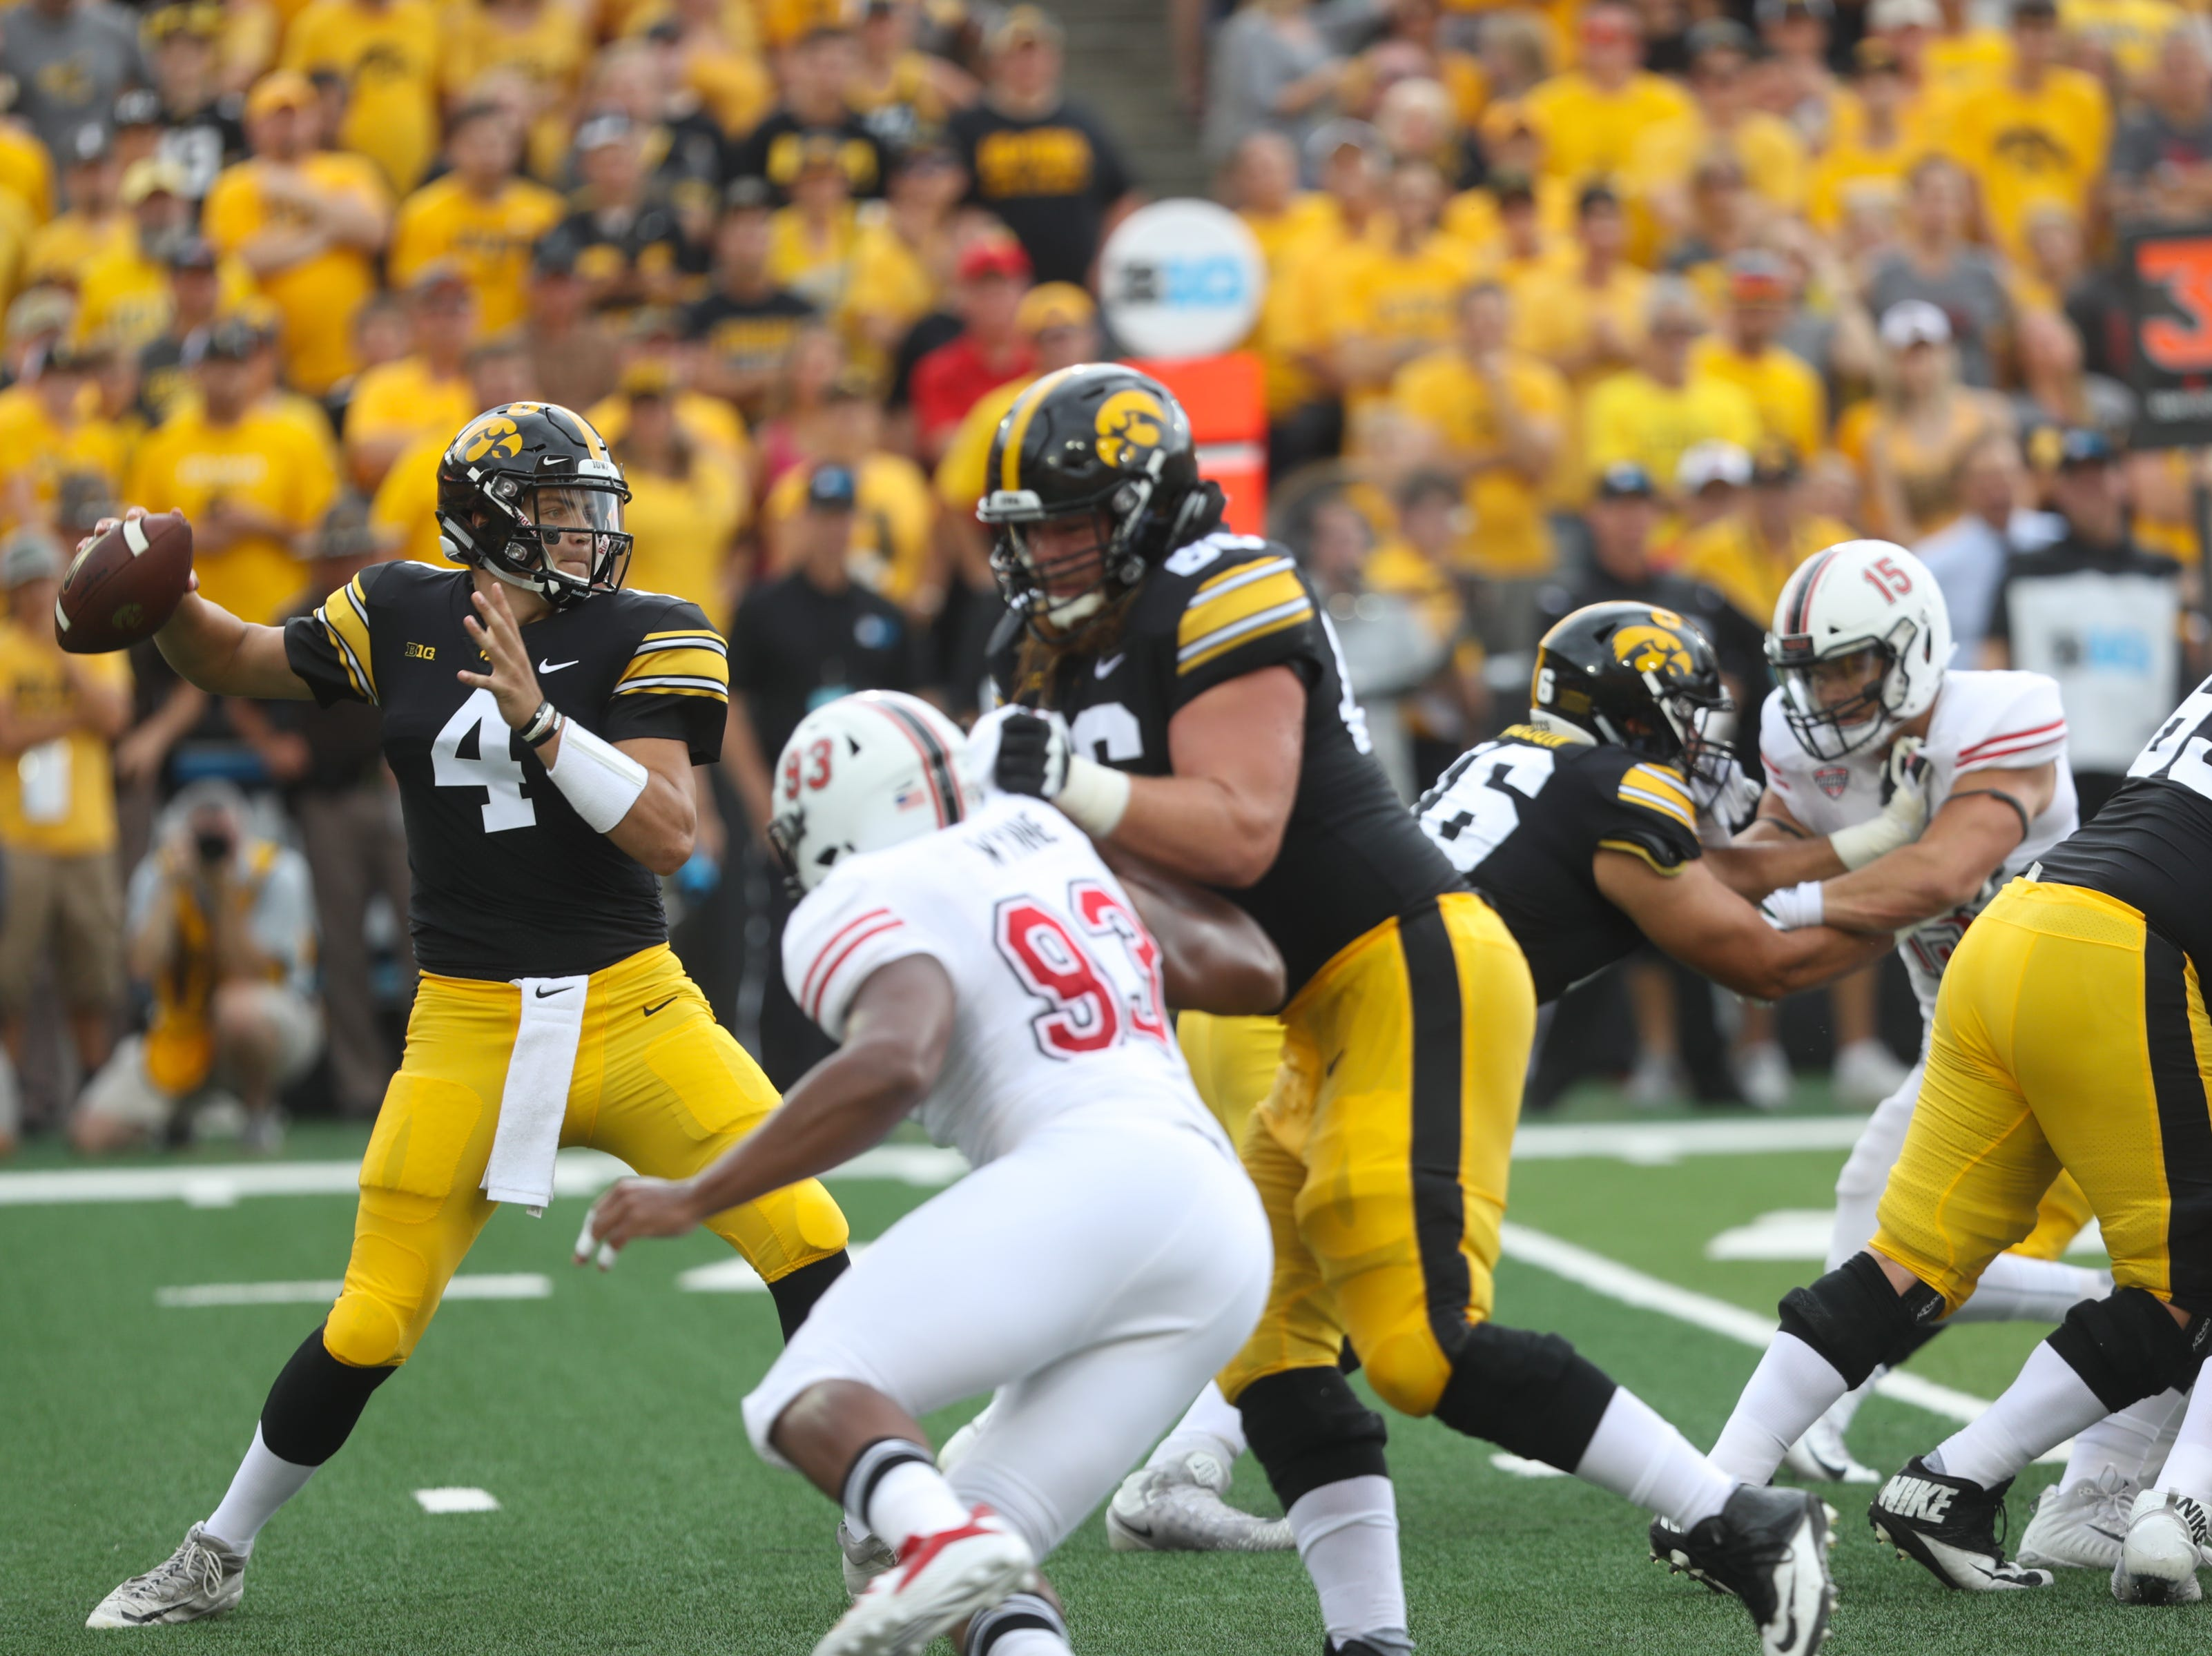 Iowa quarterback Nate Stanley throws down field during the Hawkeyes' game against Northern Illinois at Kinnick Stadium on Satuday, Sept. 1, 2018.